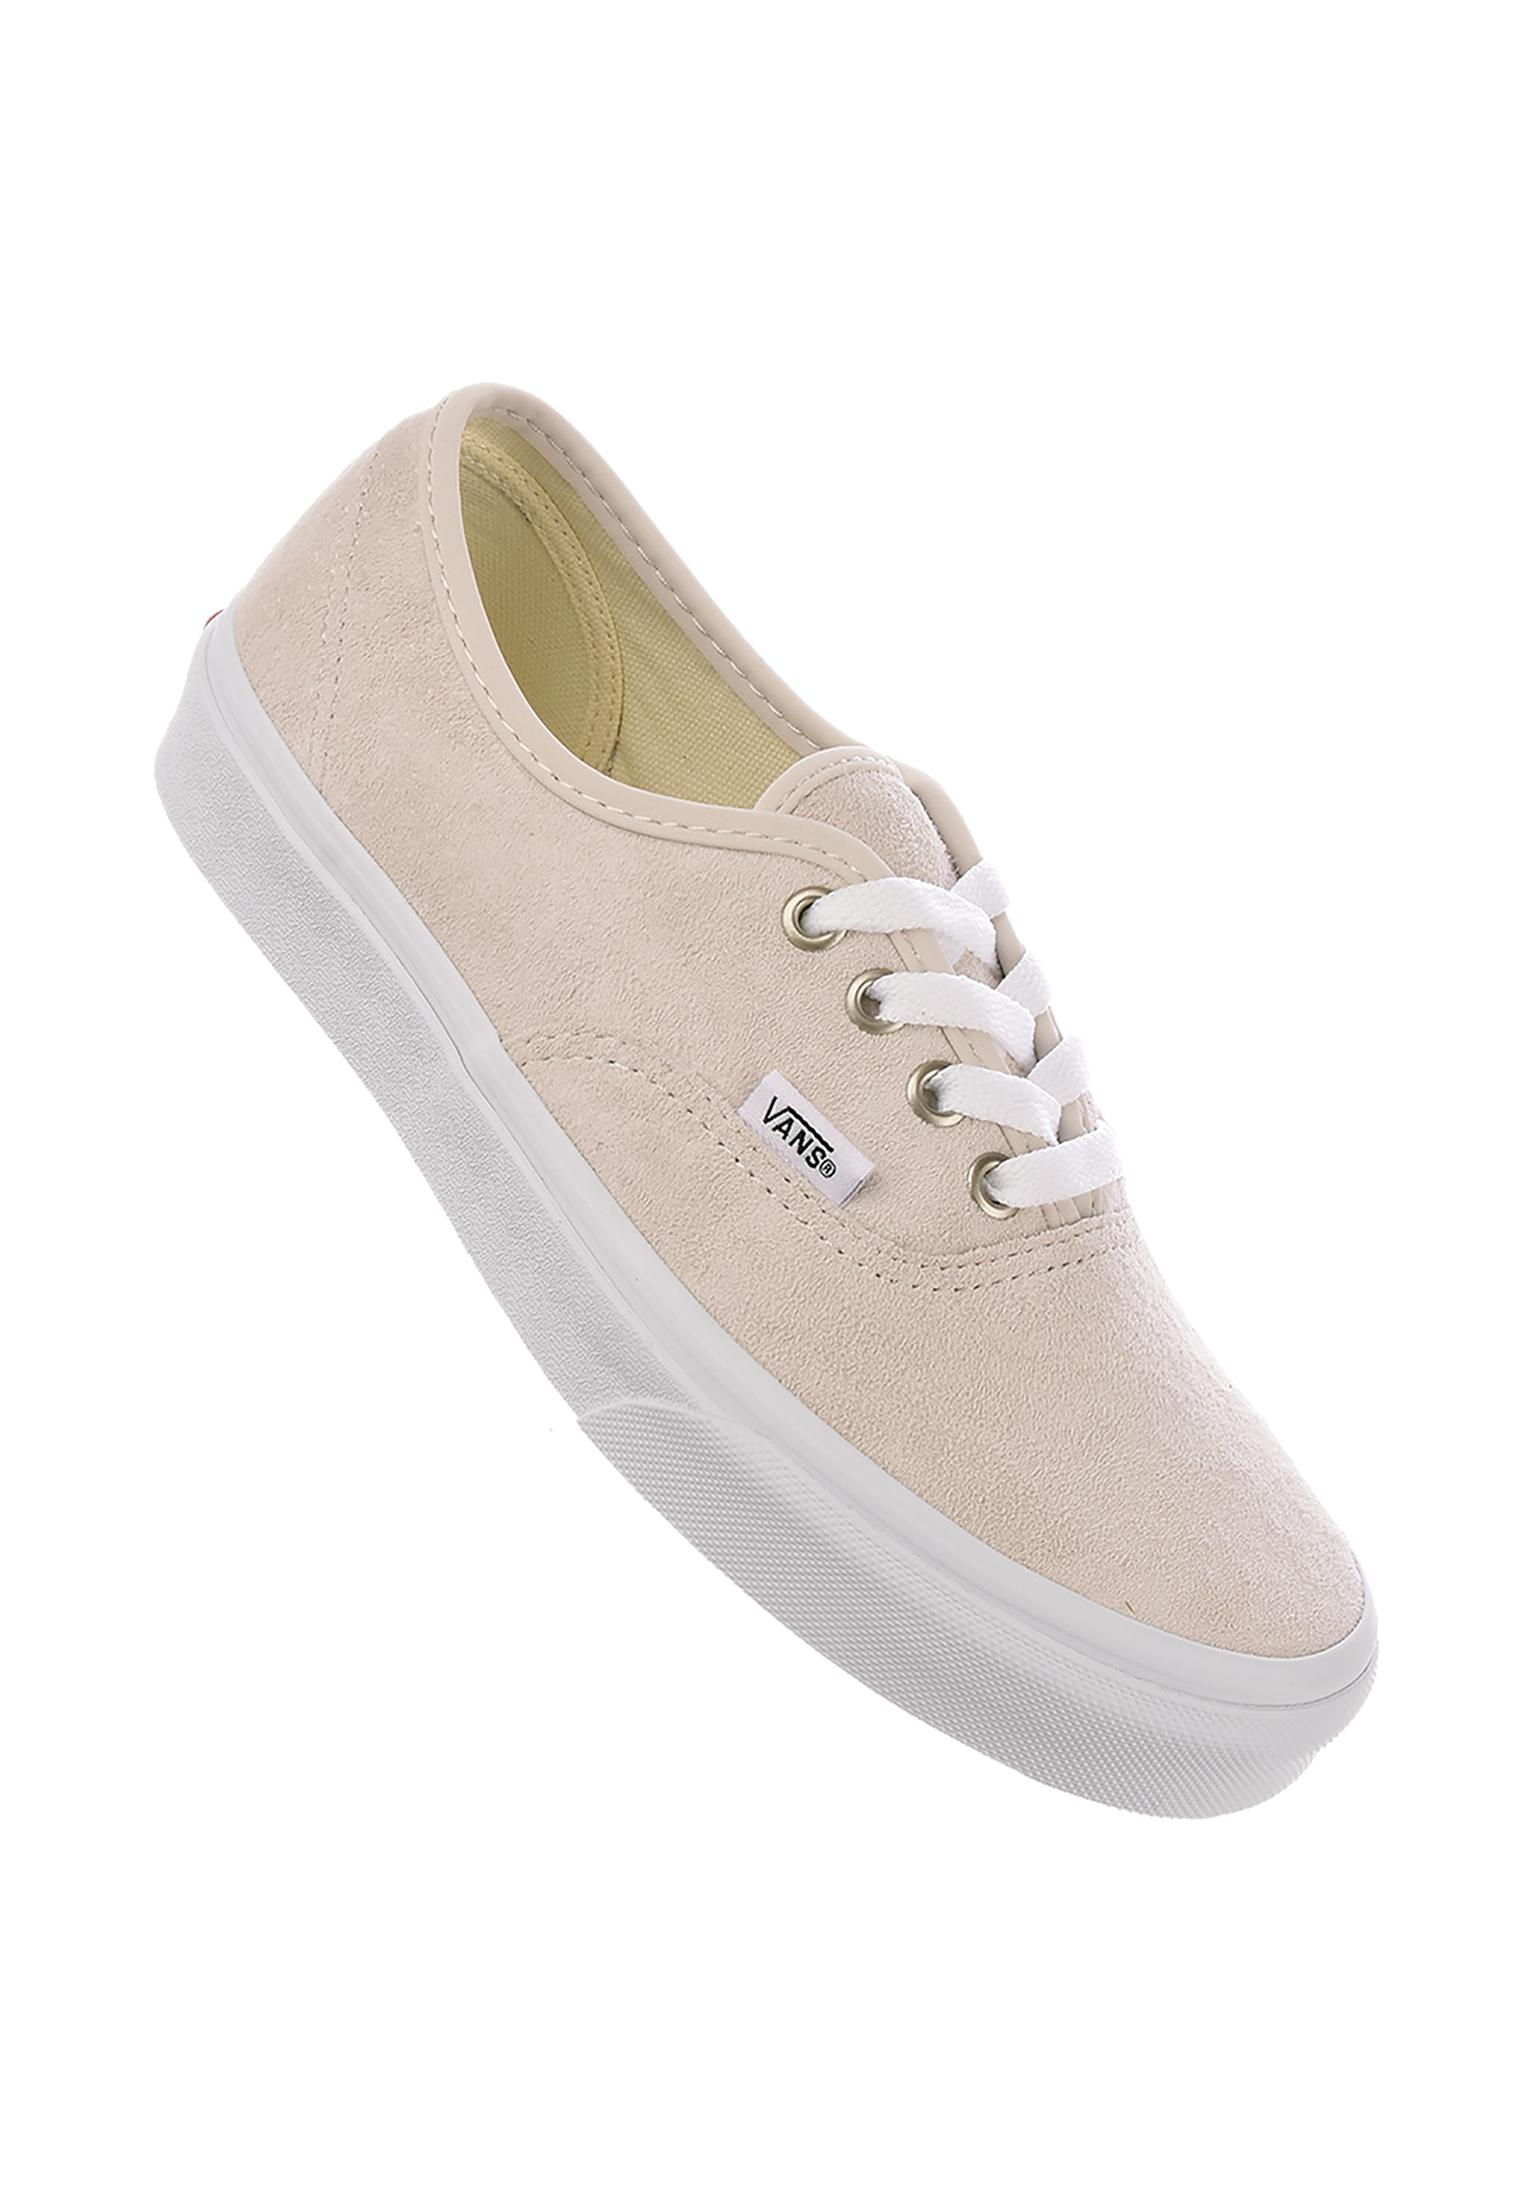 5637031a5430a0 Authentic Classic Vans All Shoes in moonbeam-truewhite for Women